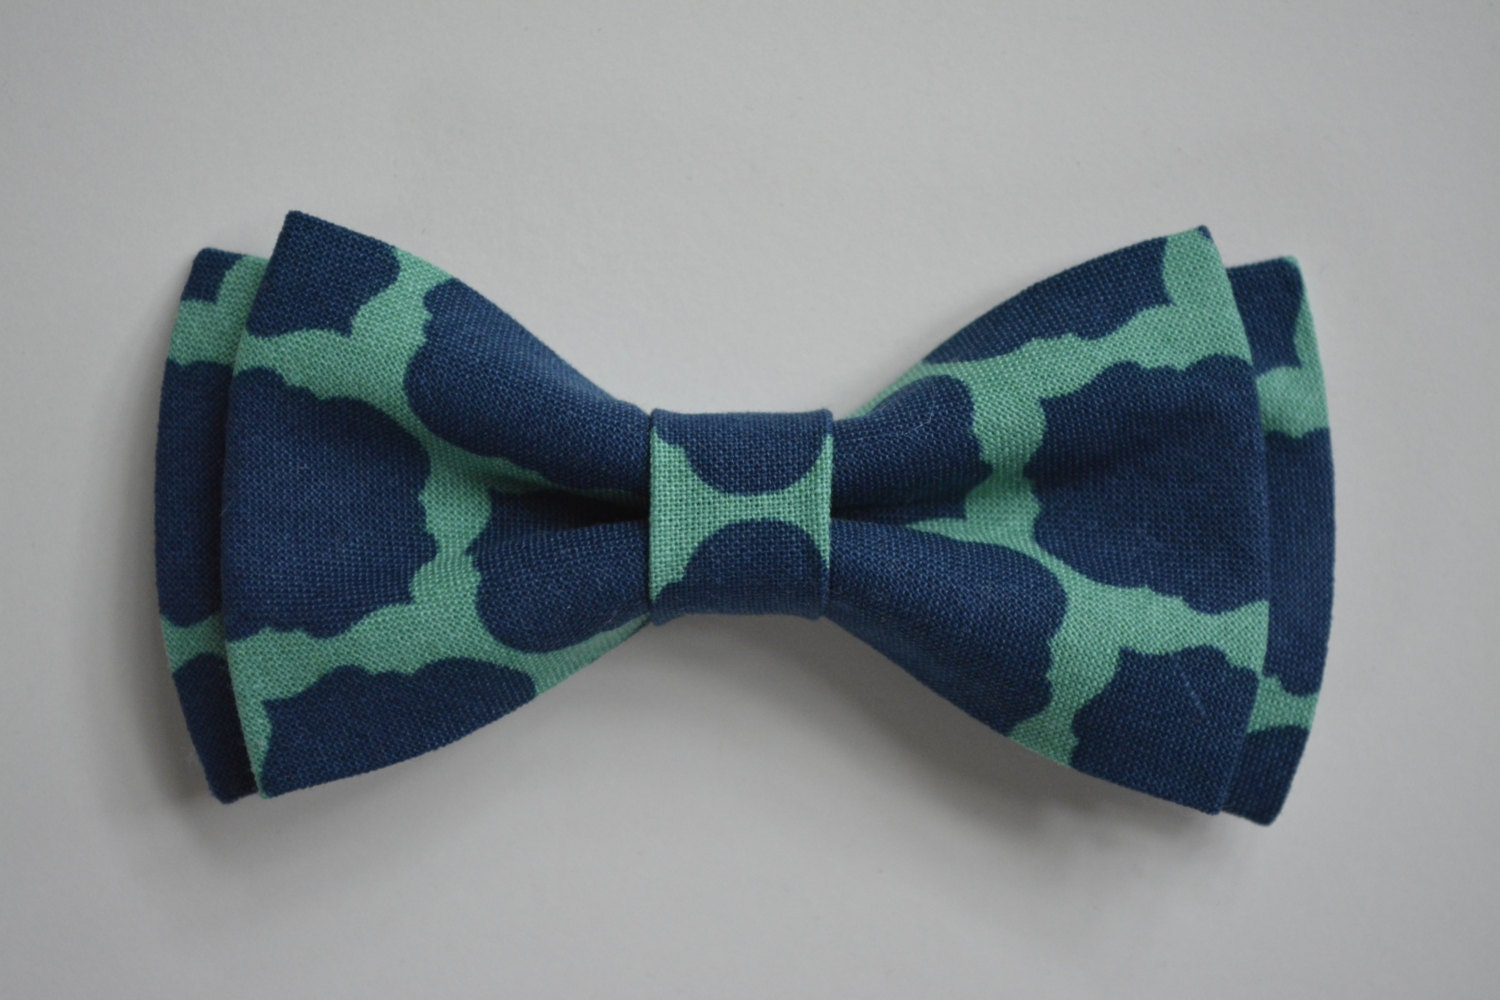 Green Bow Ties Orange Bow Ties Pink Bow Ties Purple Bow Ties Red Bow Ties Navy Blue Bow Tie. $ Goose Bow Tie. $ Yakima Bow Tie. $ $ Bora Bora Bow Tie. $ Throughout the years, bow ties have become increasingly popular, with men and women using this trendy neckwear as a tool for self-expression.